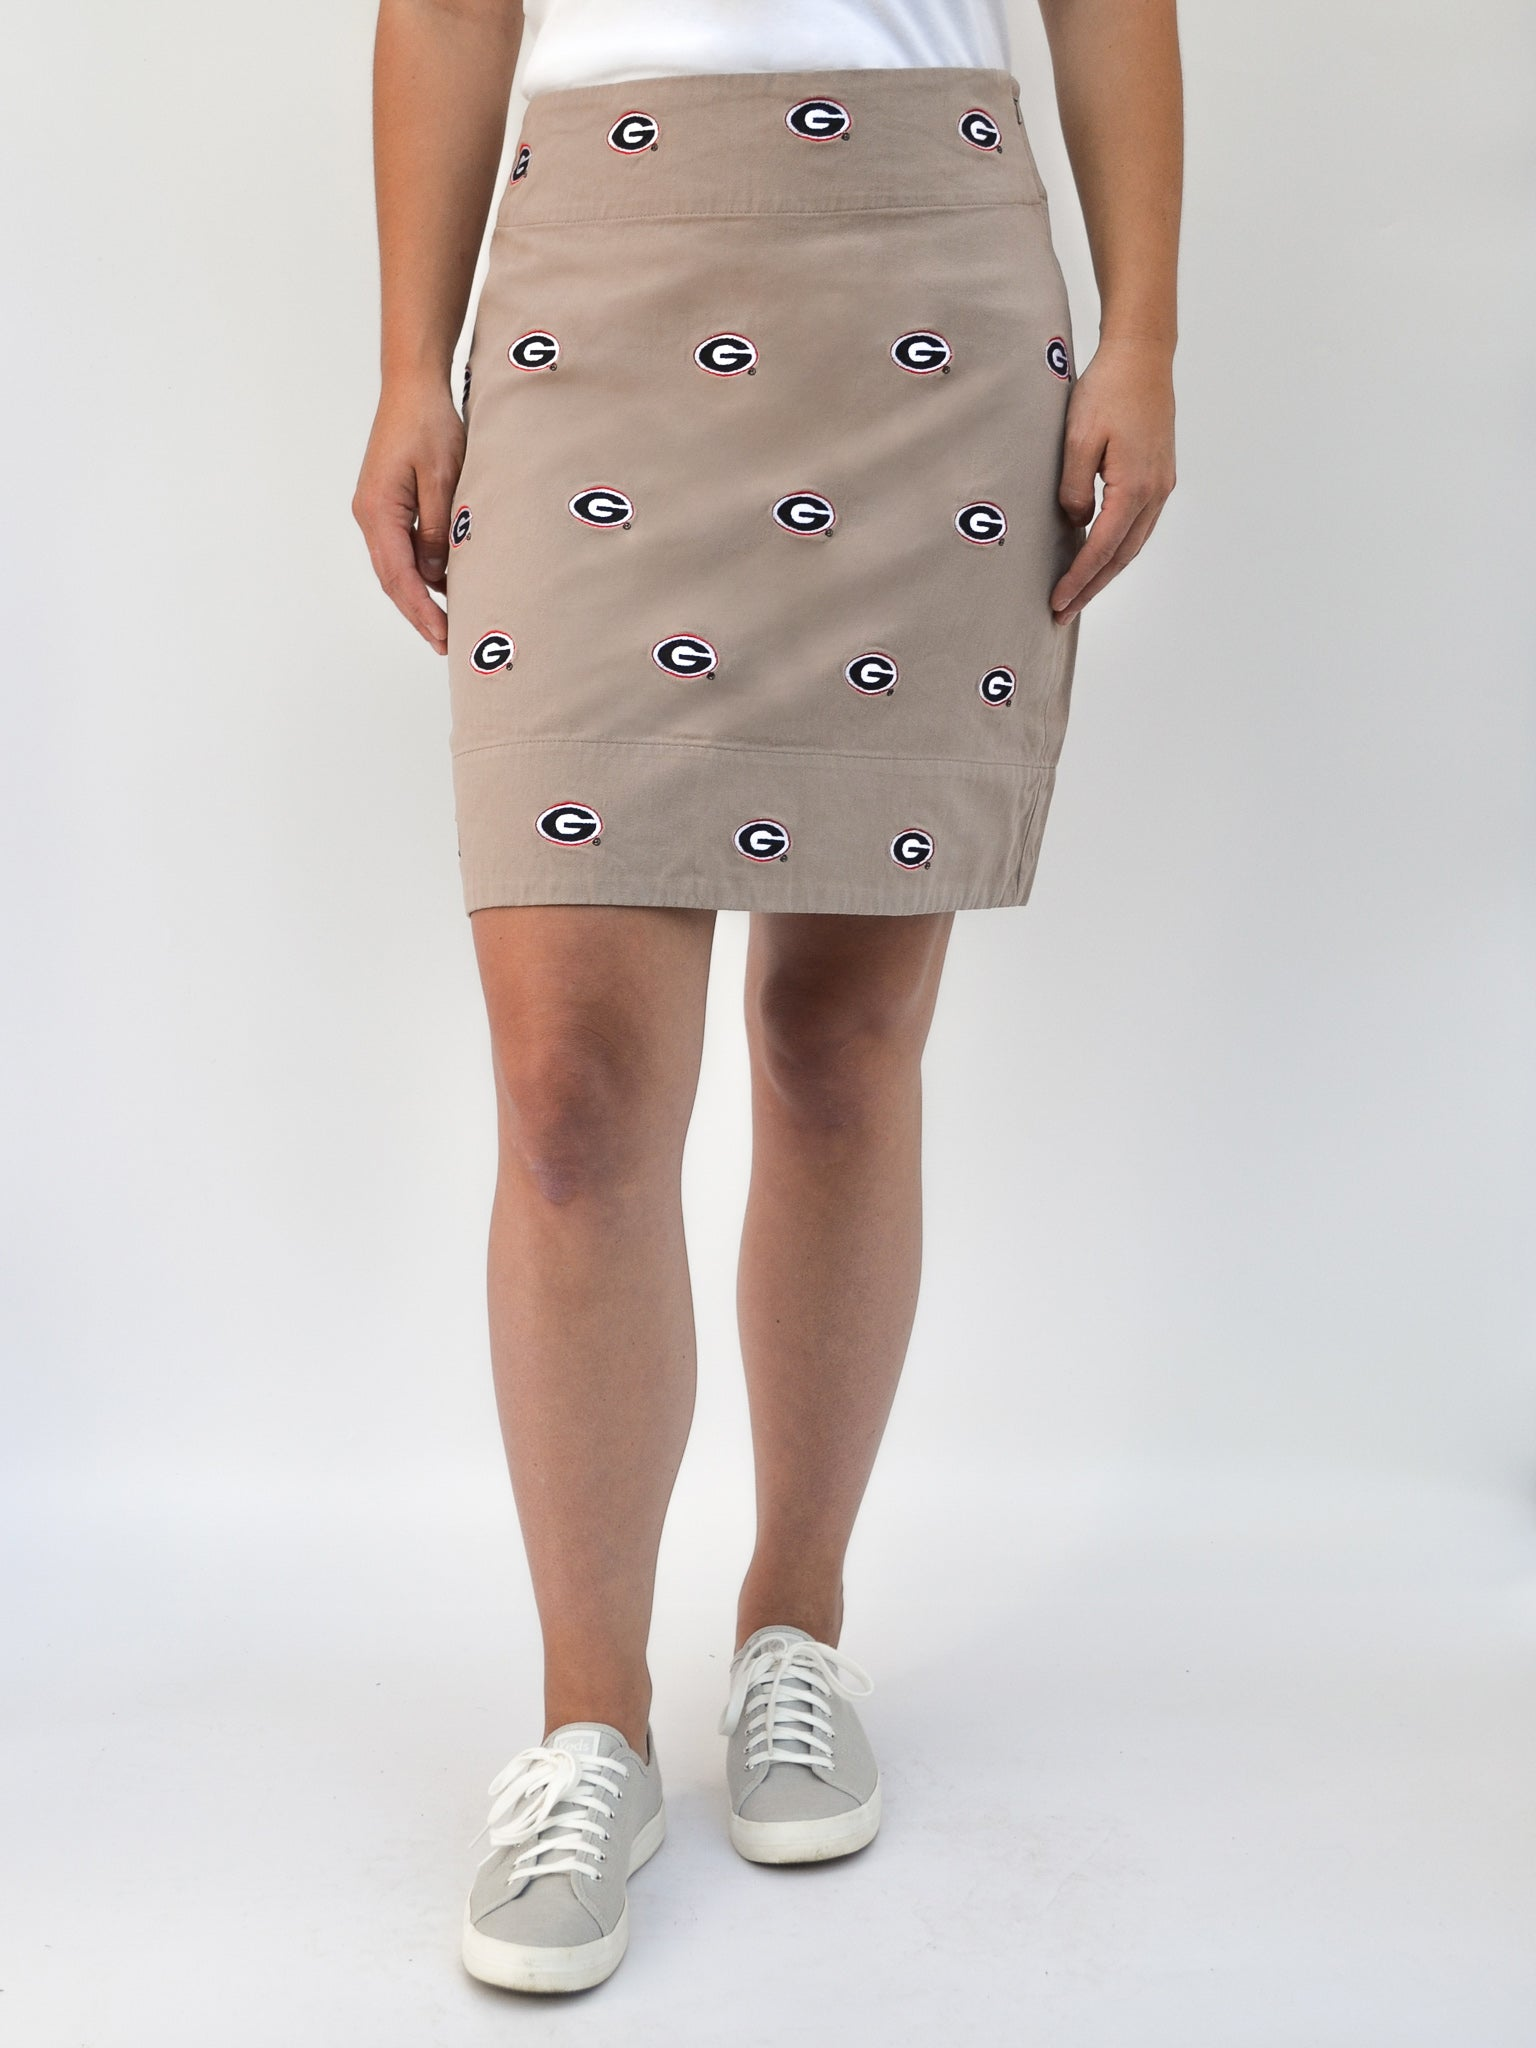 Georgia G Khaki Skirt